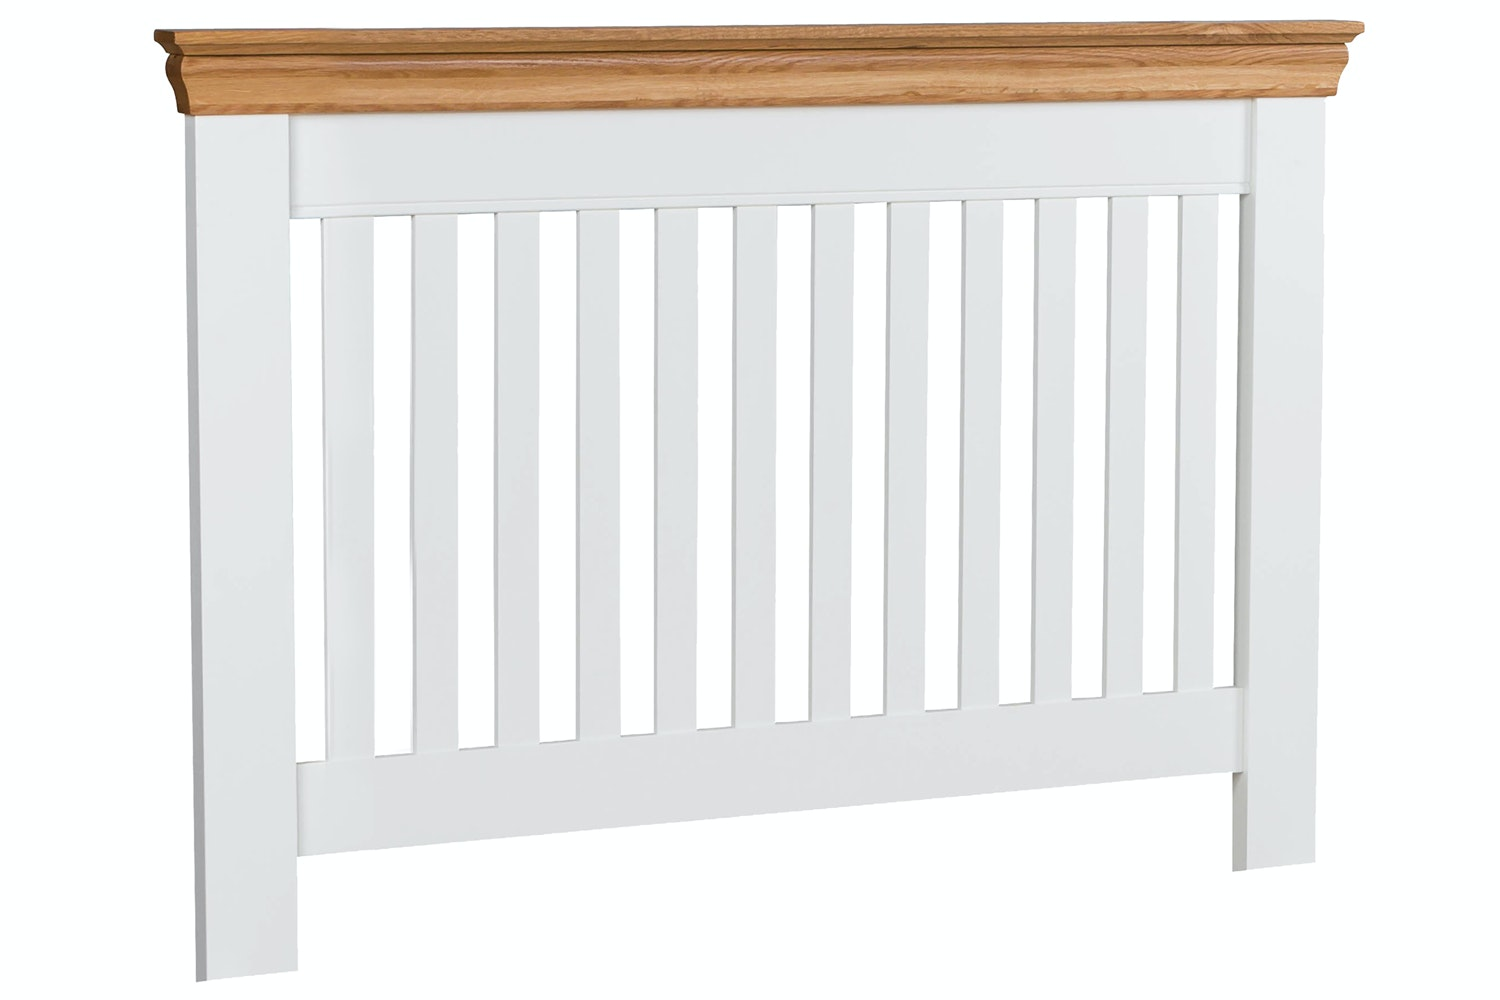 Ascott Headboard | 3ft | White & Oak